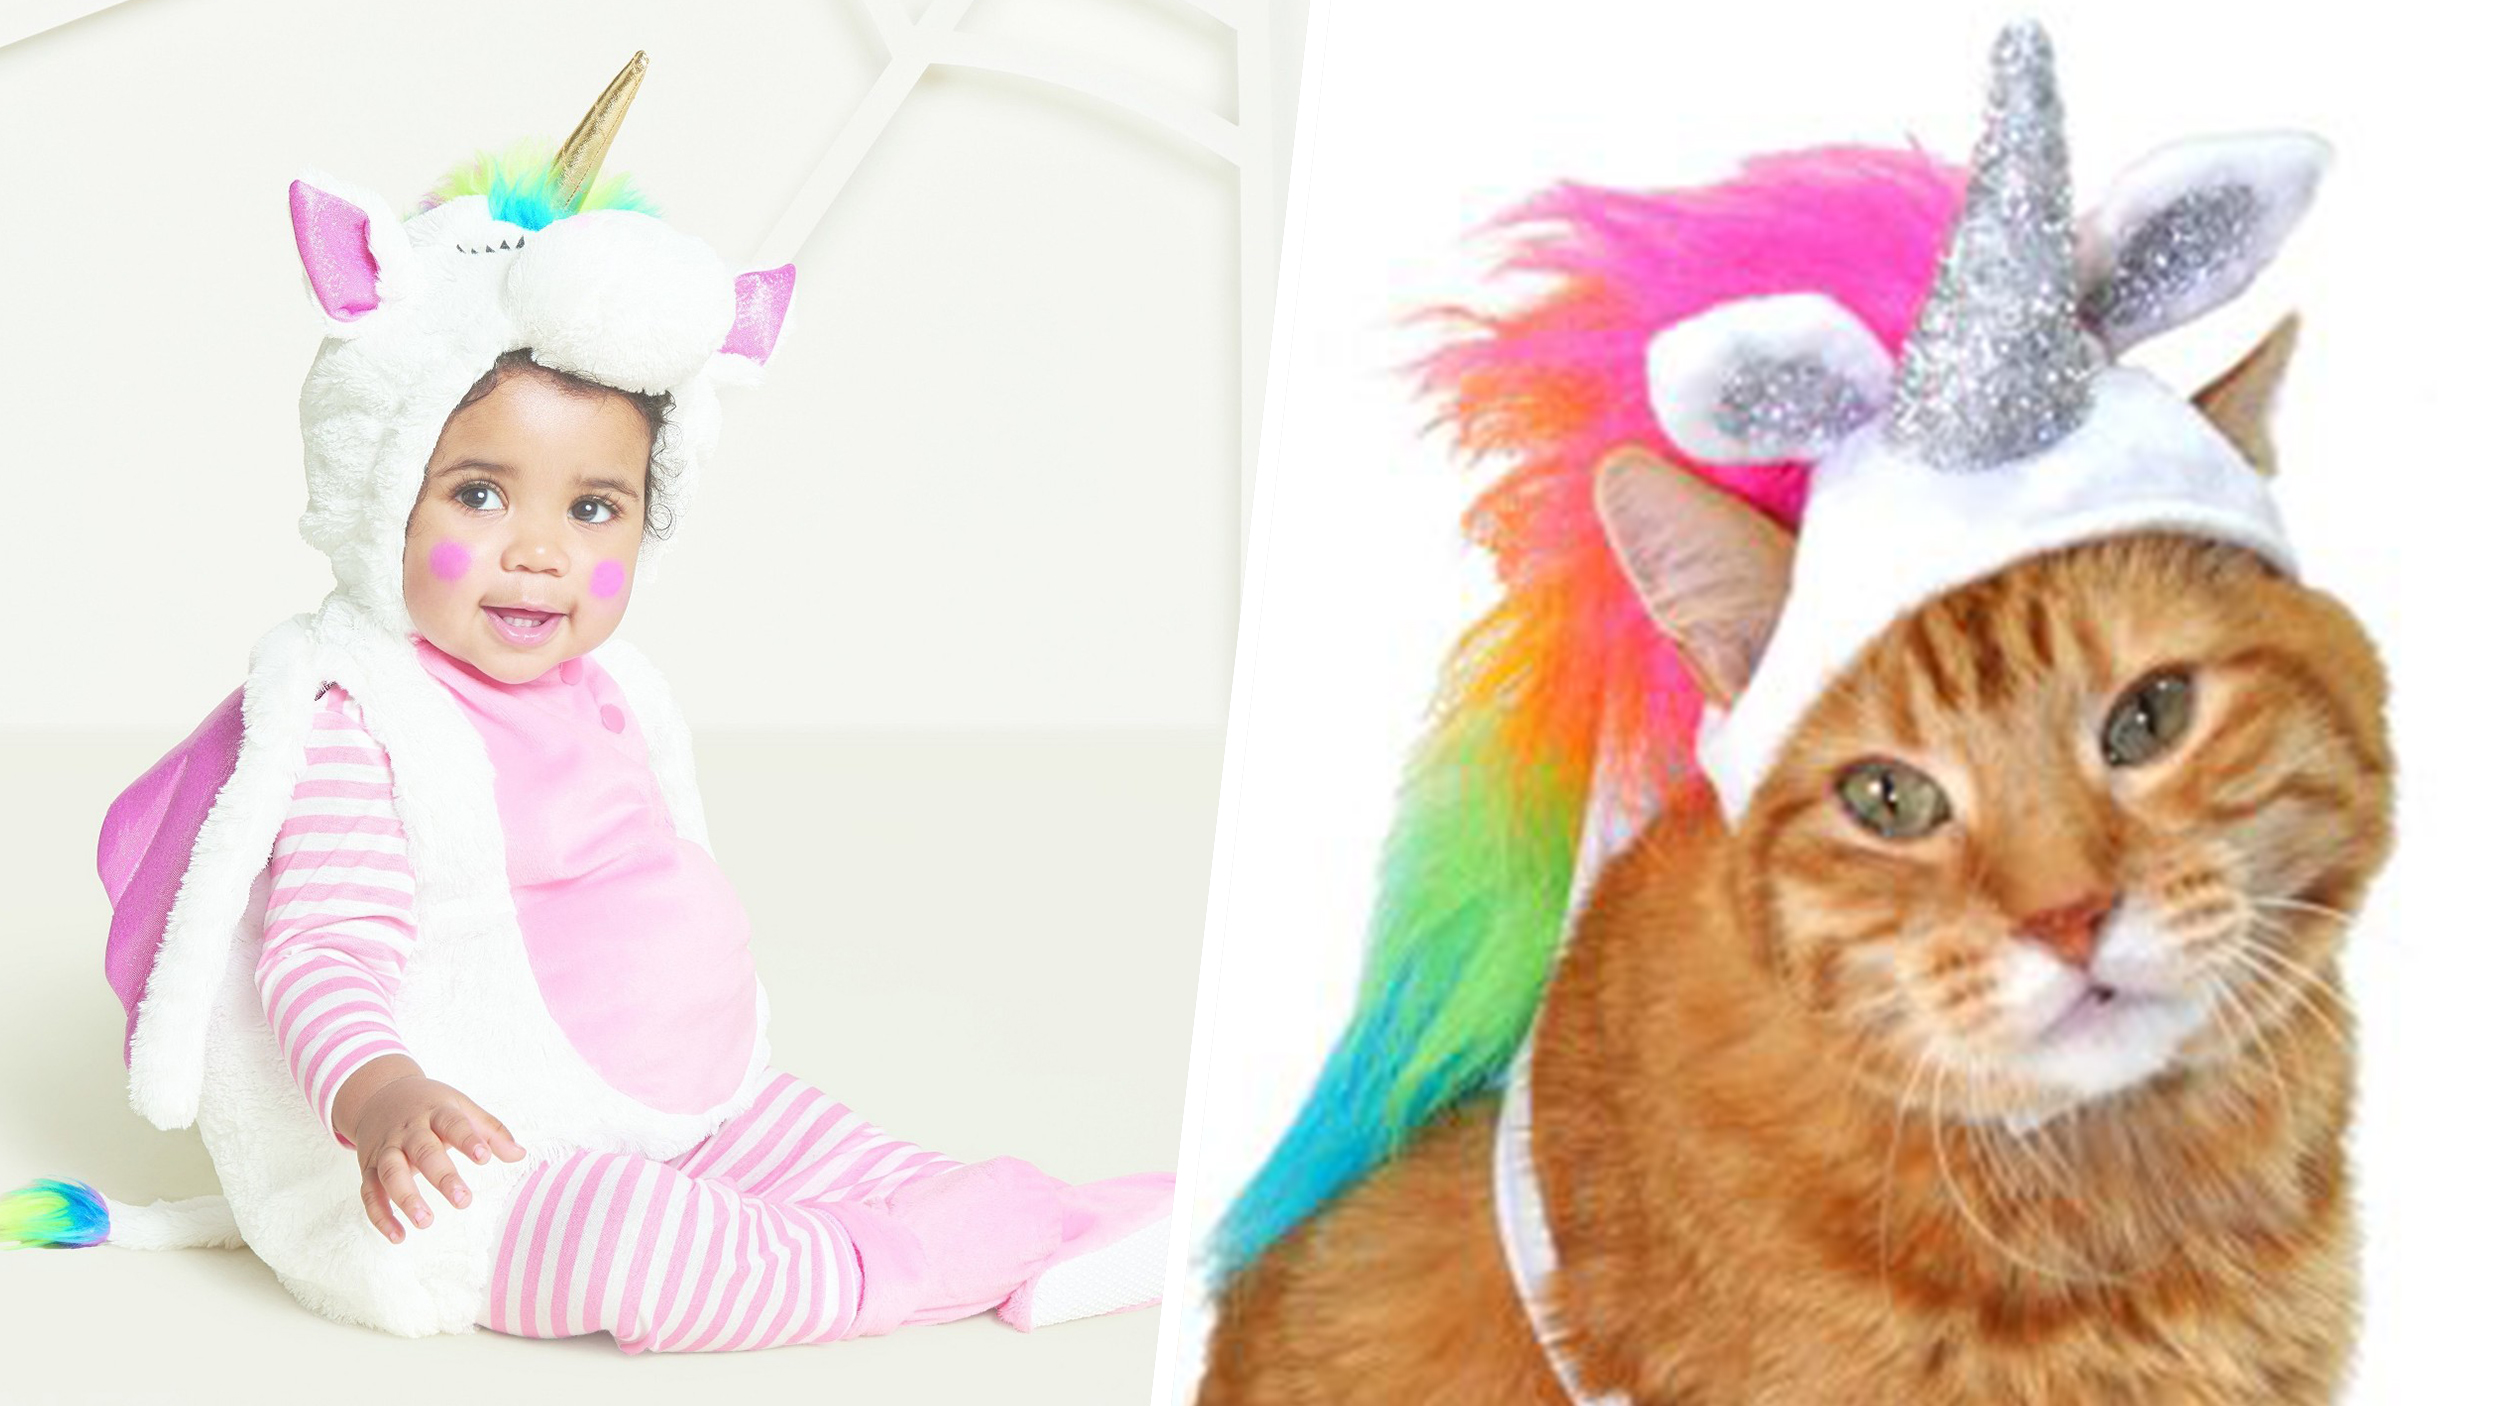 sc 1 st  Today Show & 11 adorable matching Halloween costumes for kids and pets